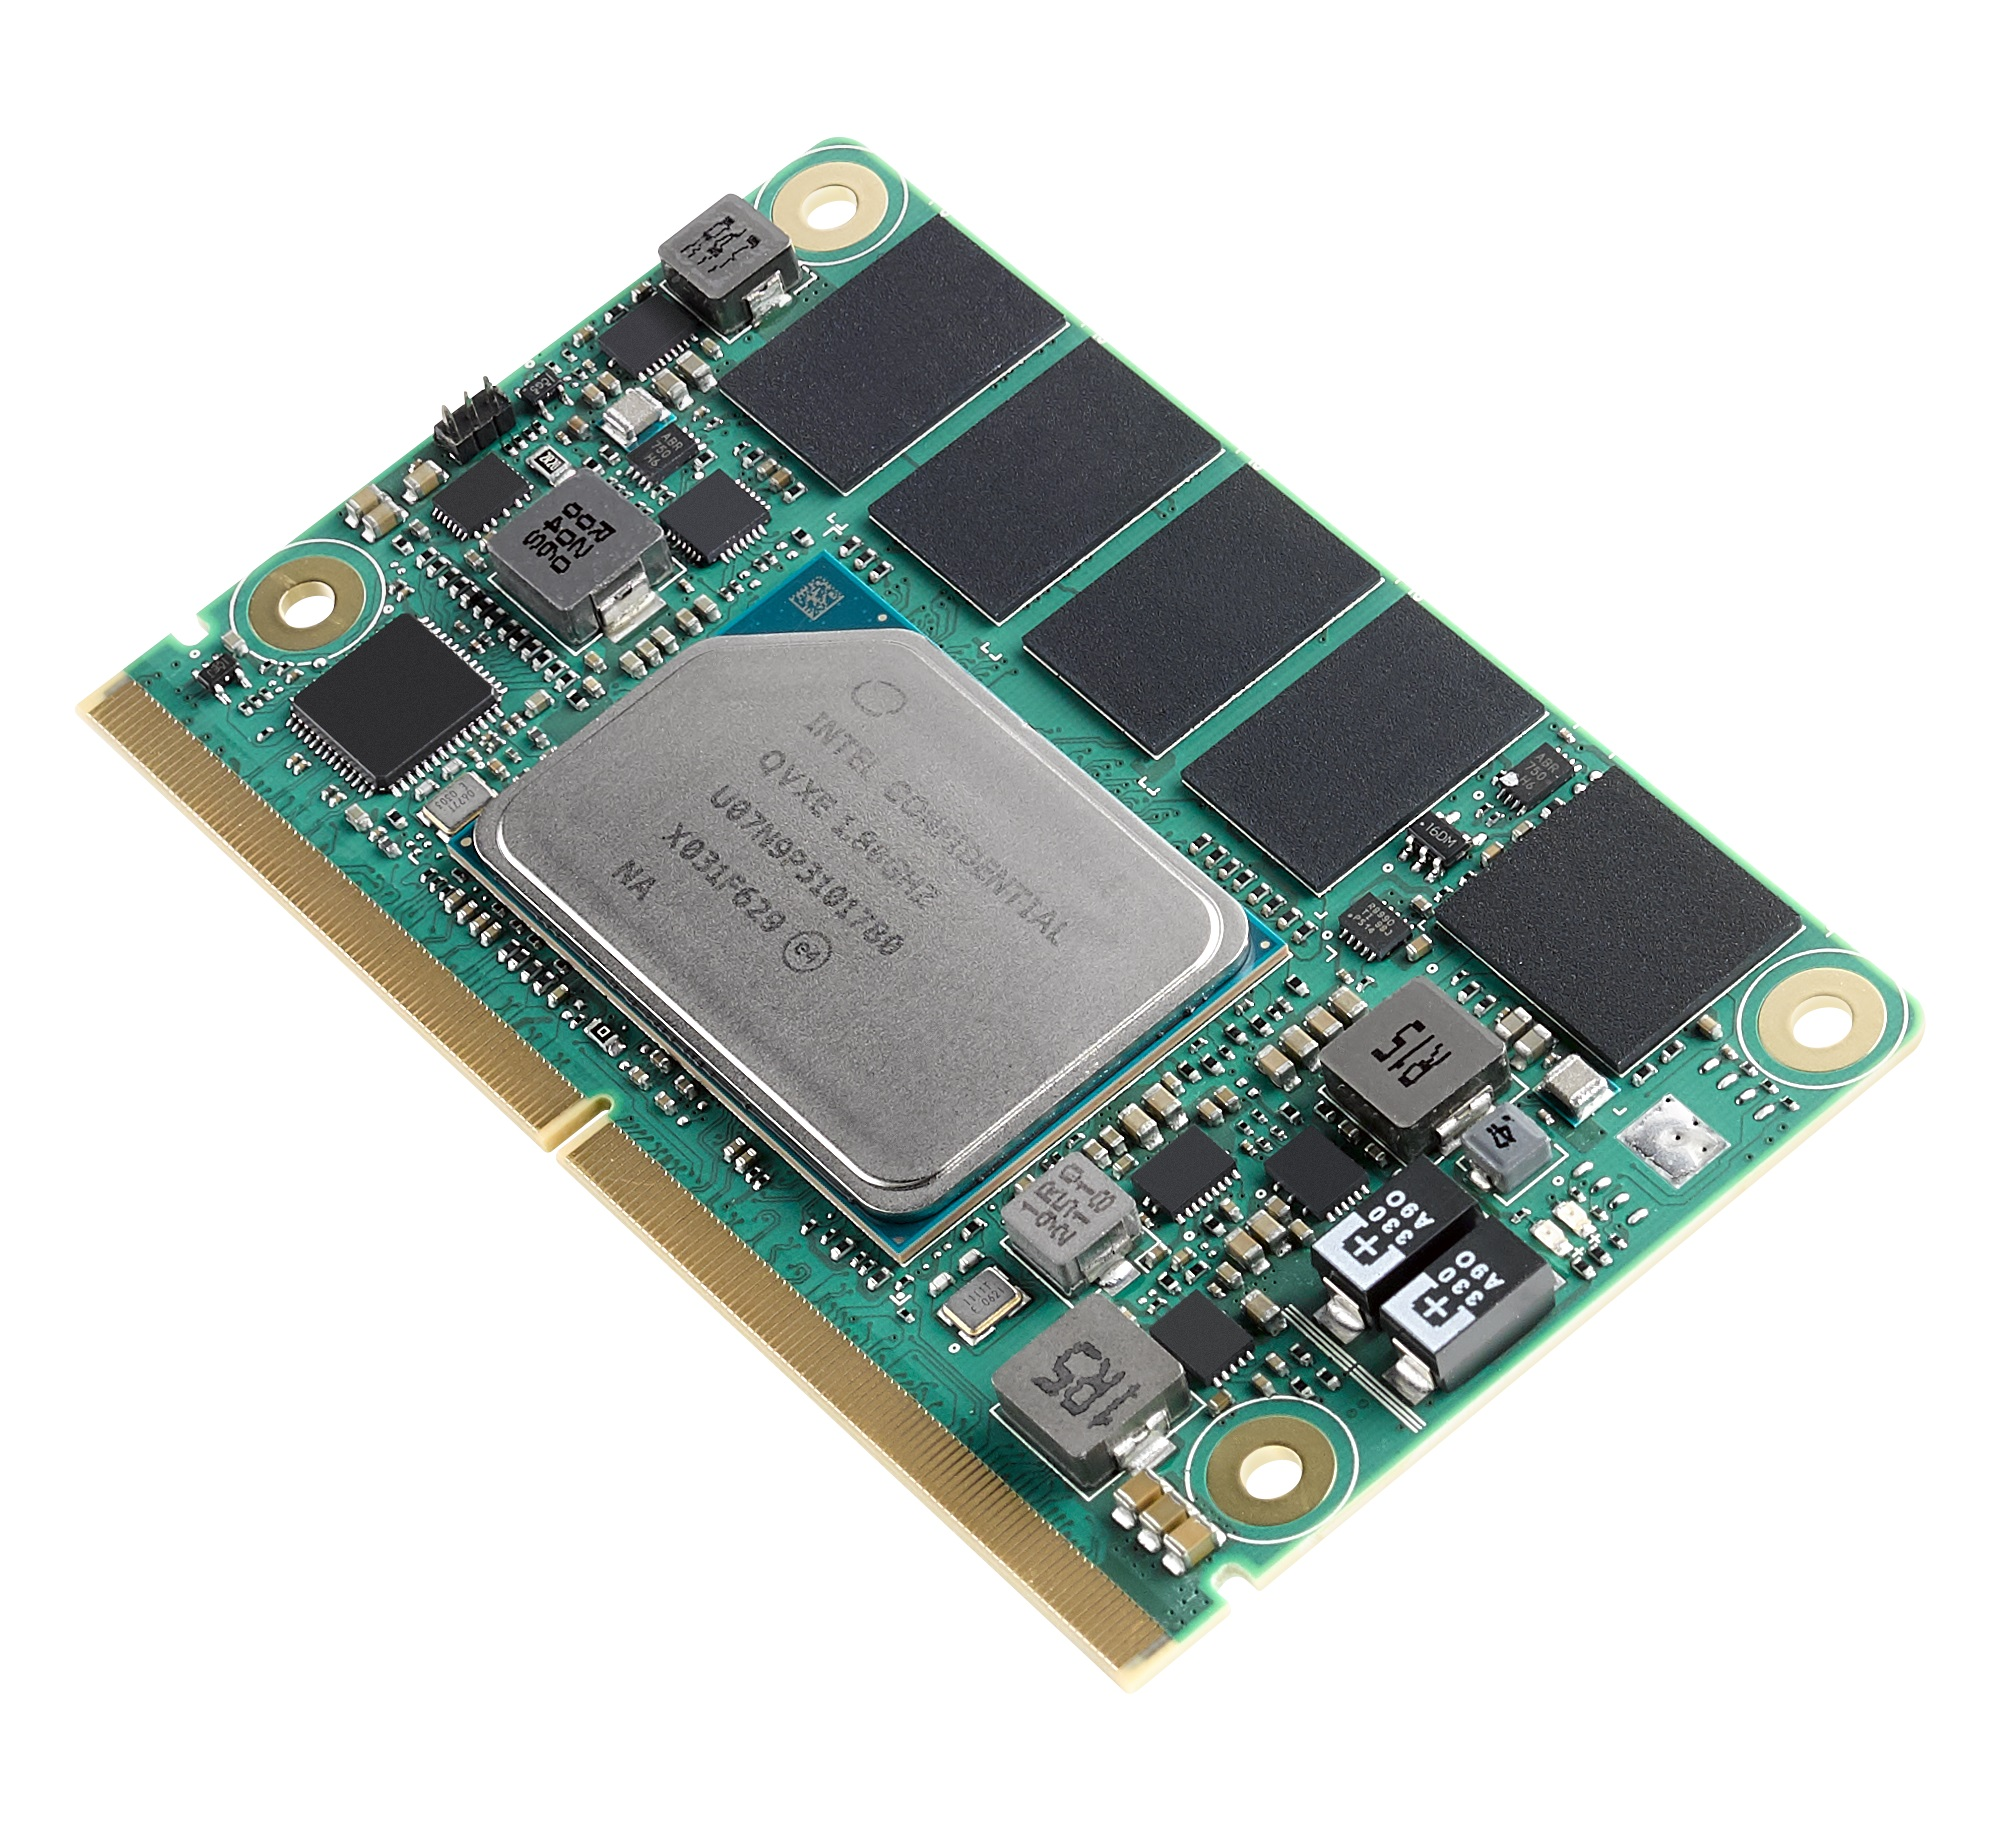 Advantech Launches Latest SMARC 2.1 Design SOM-2532 for Real Time Automation Control